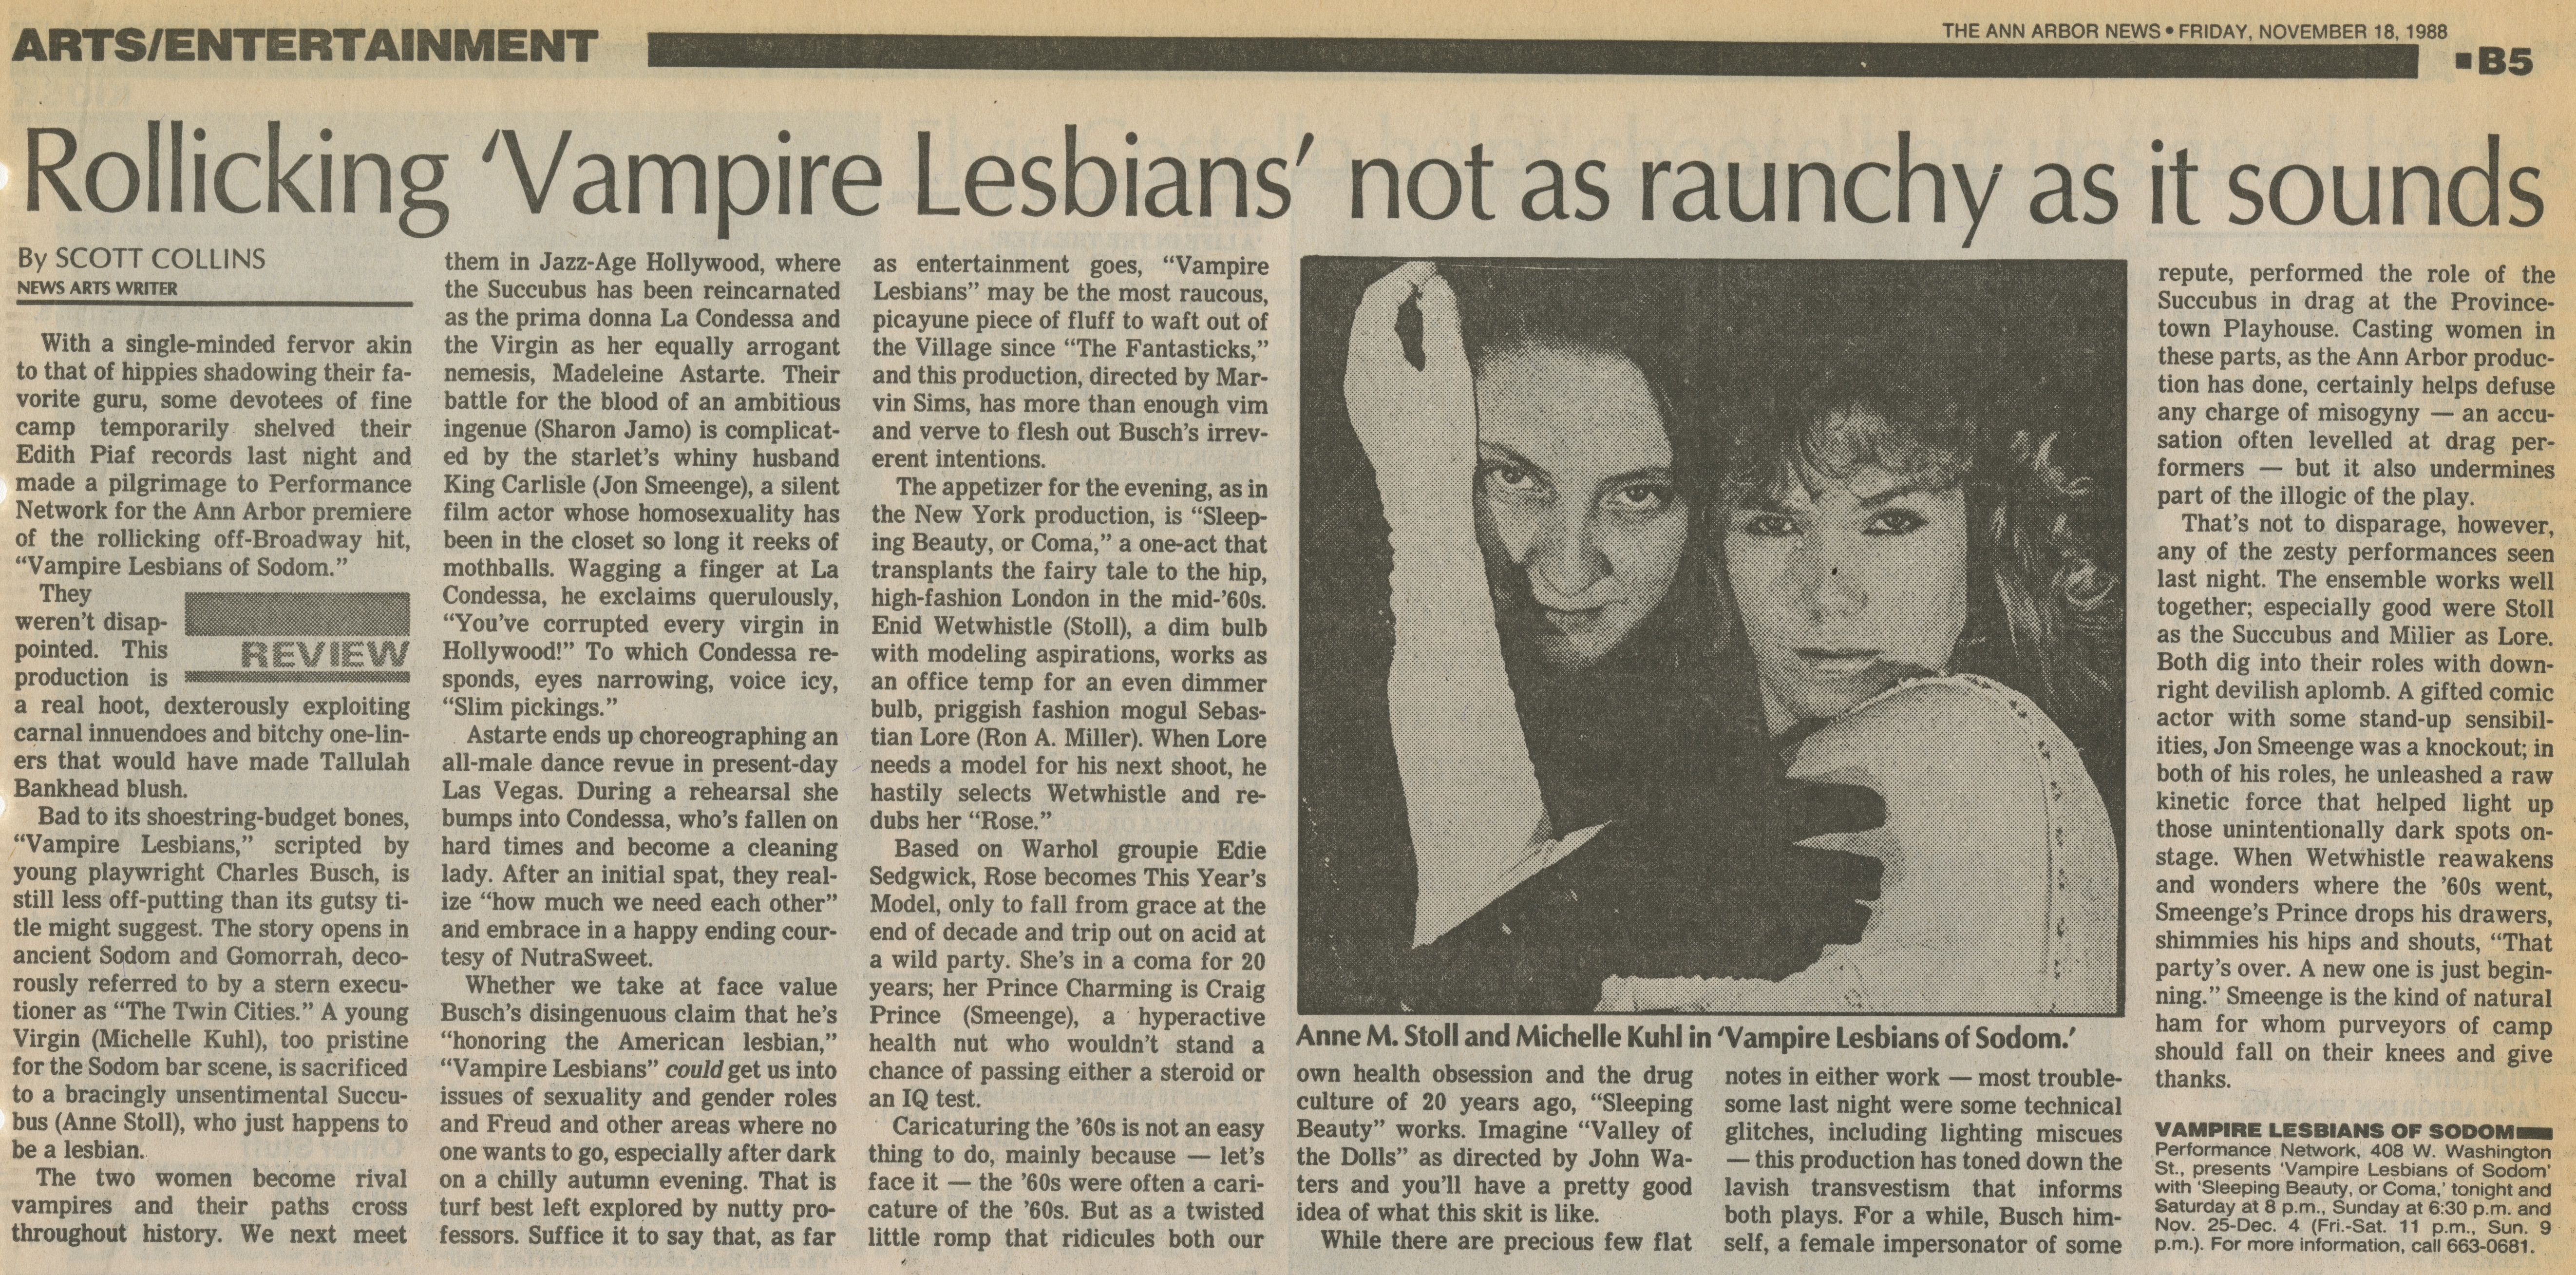 Rollicking 'Vampire Lesbians' not as raunchy as it sounds image